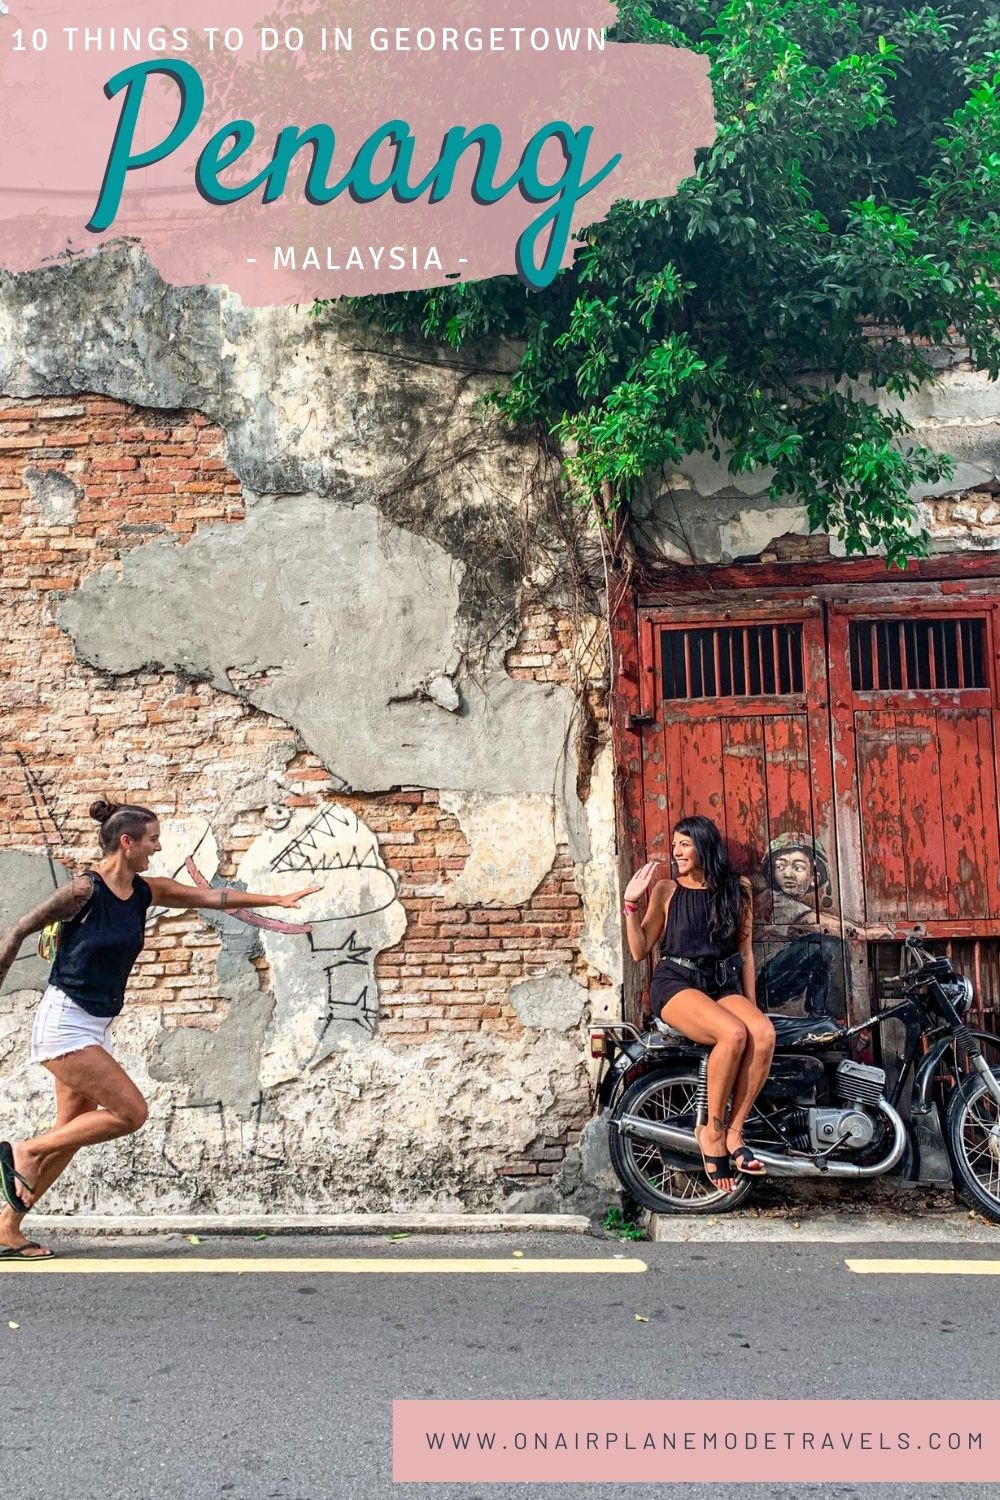 10 Things to Do in Georgetown (Penang), Malaysia | On Airplane Mode